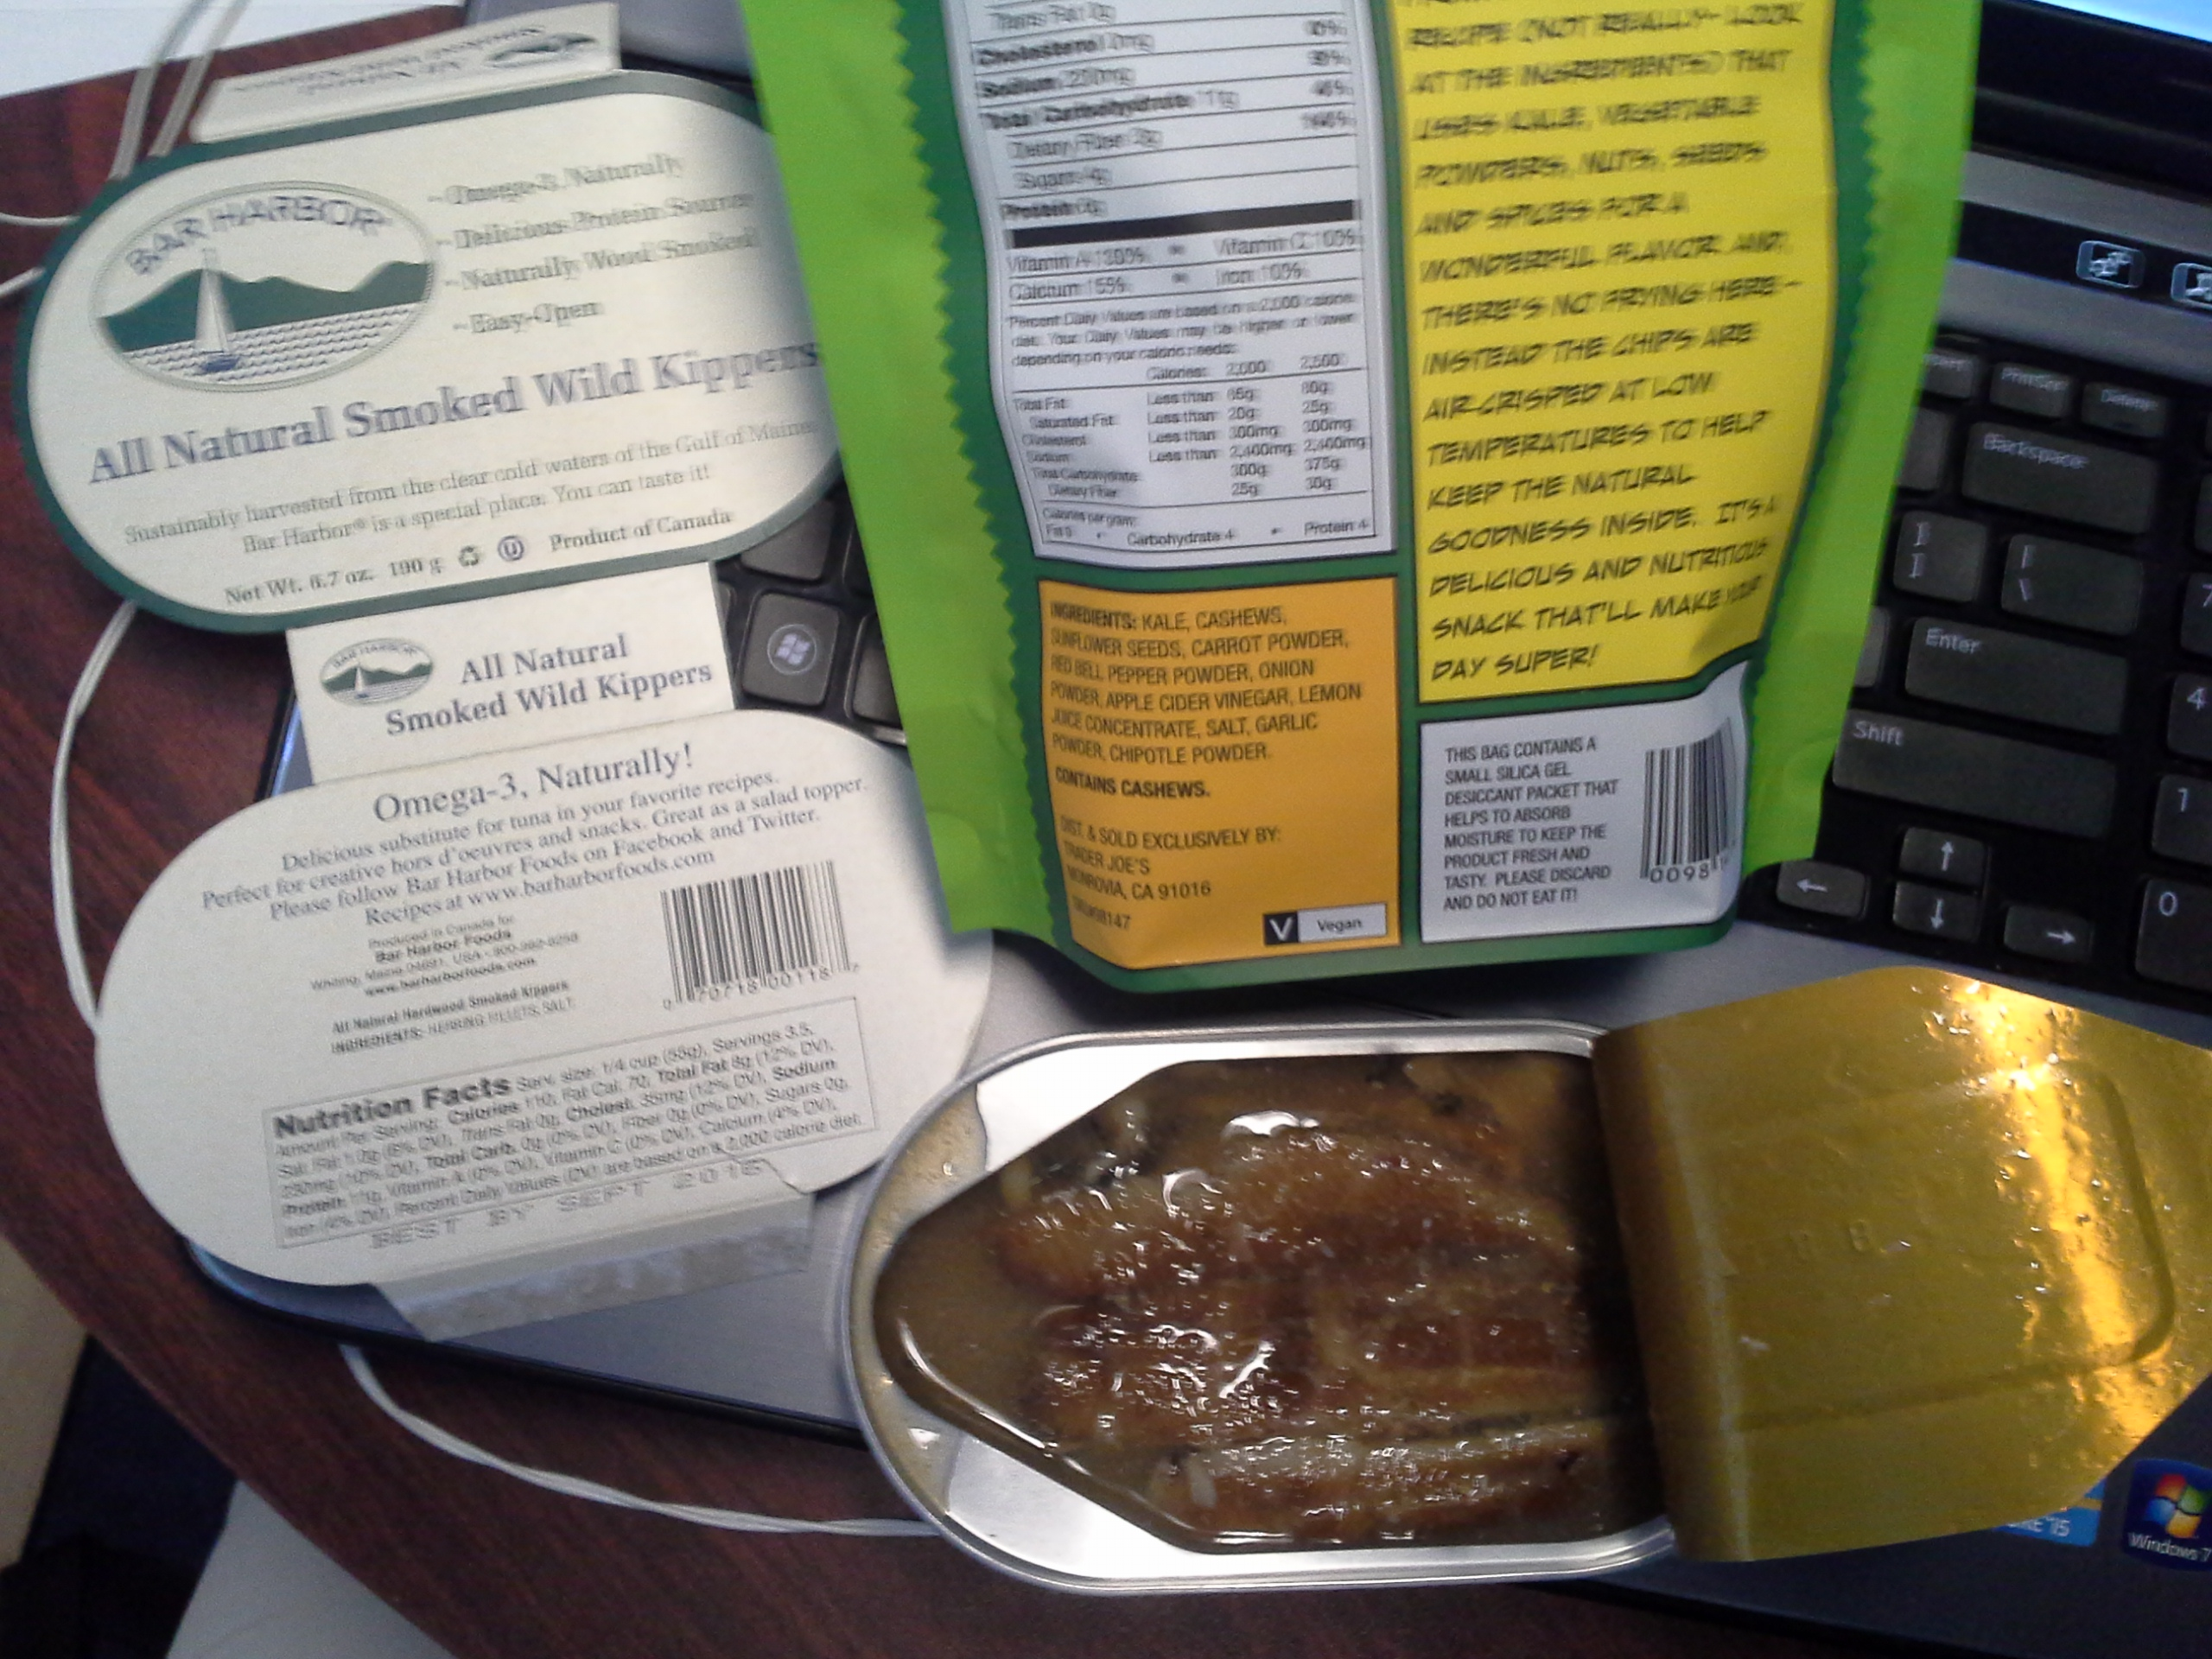 Lunch: 1:25 p.m. | 6.7 oz. herring, 2 oz. kale chips, 5,000 IU Vitamin D capsule, Calcium/Magnesium/Zinc caplet